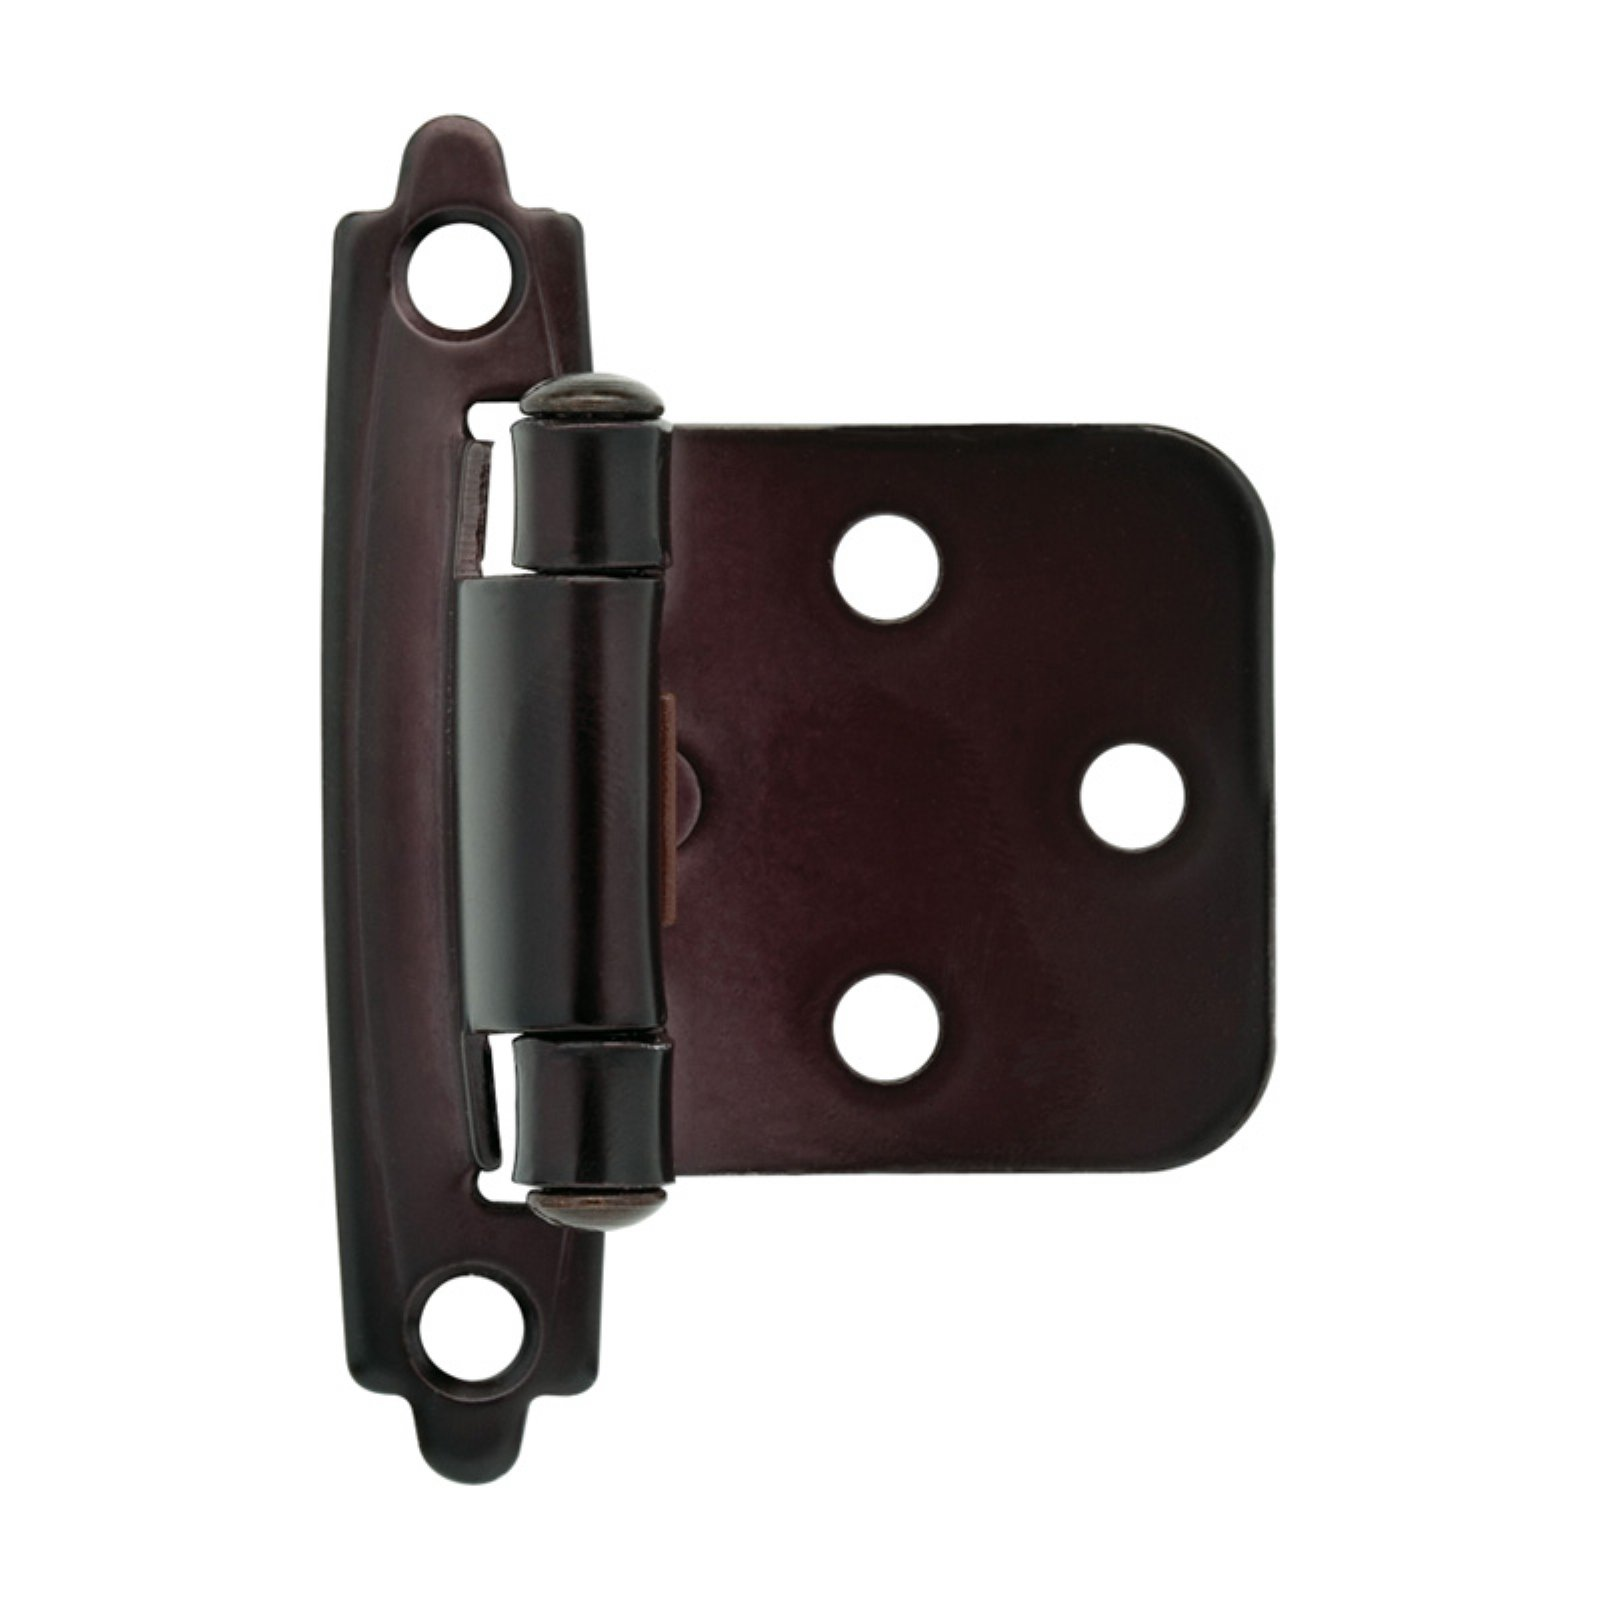 Liberty Hardware Self Closing Overlay Hinge Set Of 2 Overlay Hinges Hinges For Cabinets Inset Hinges